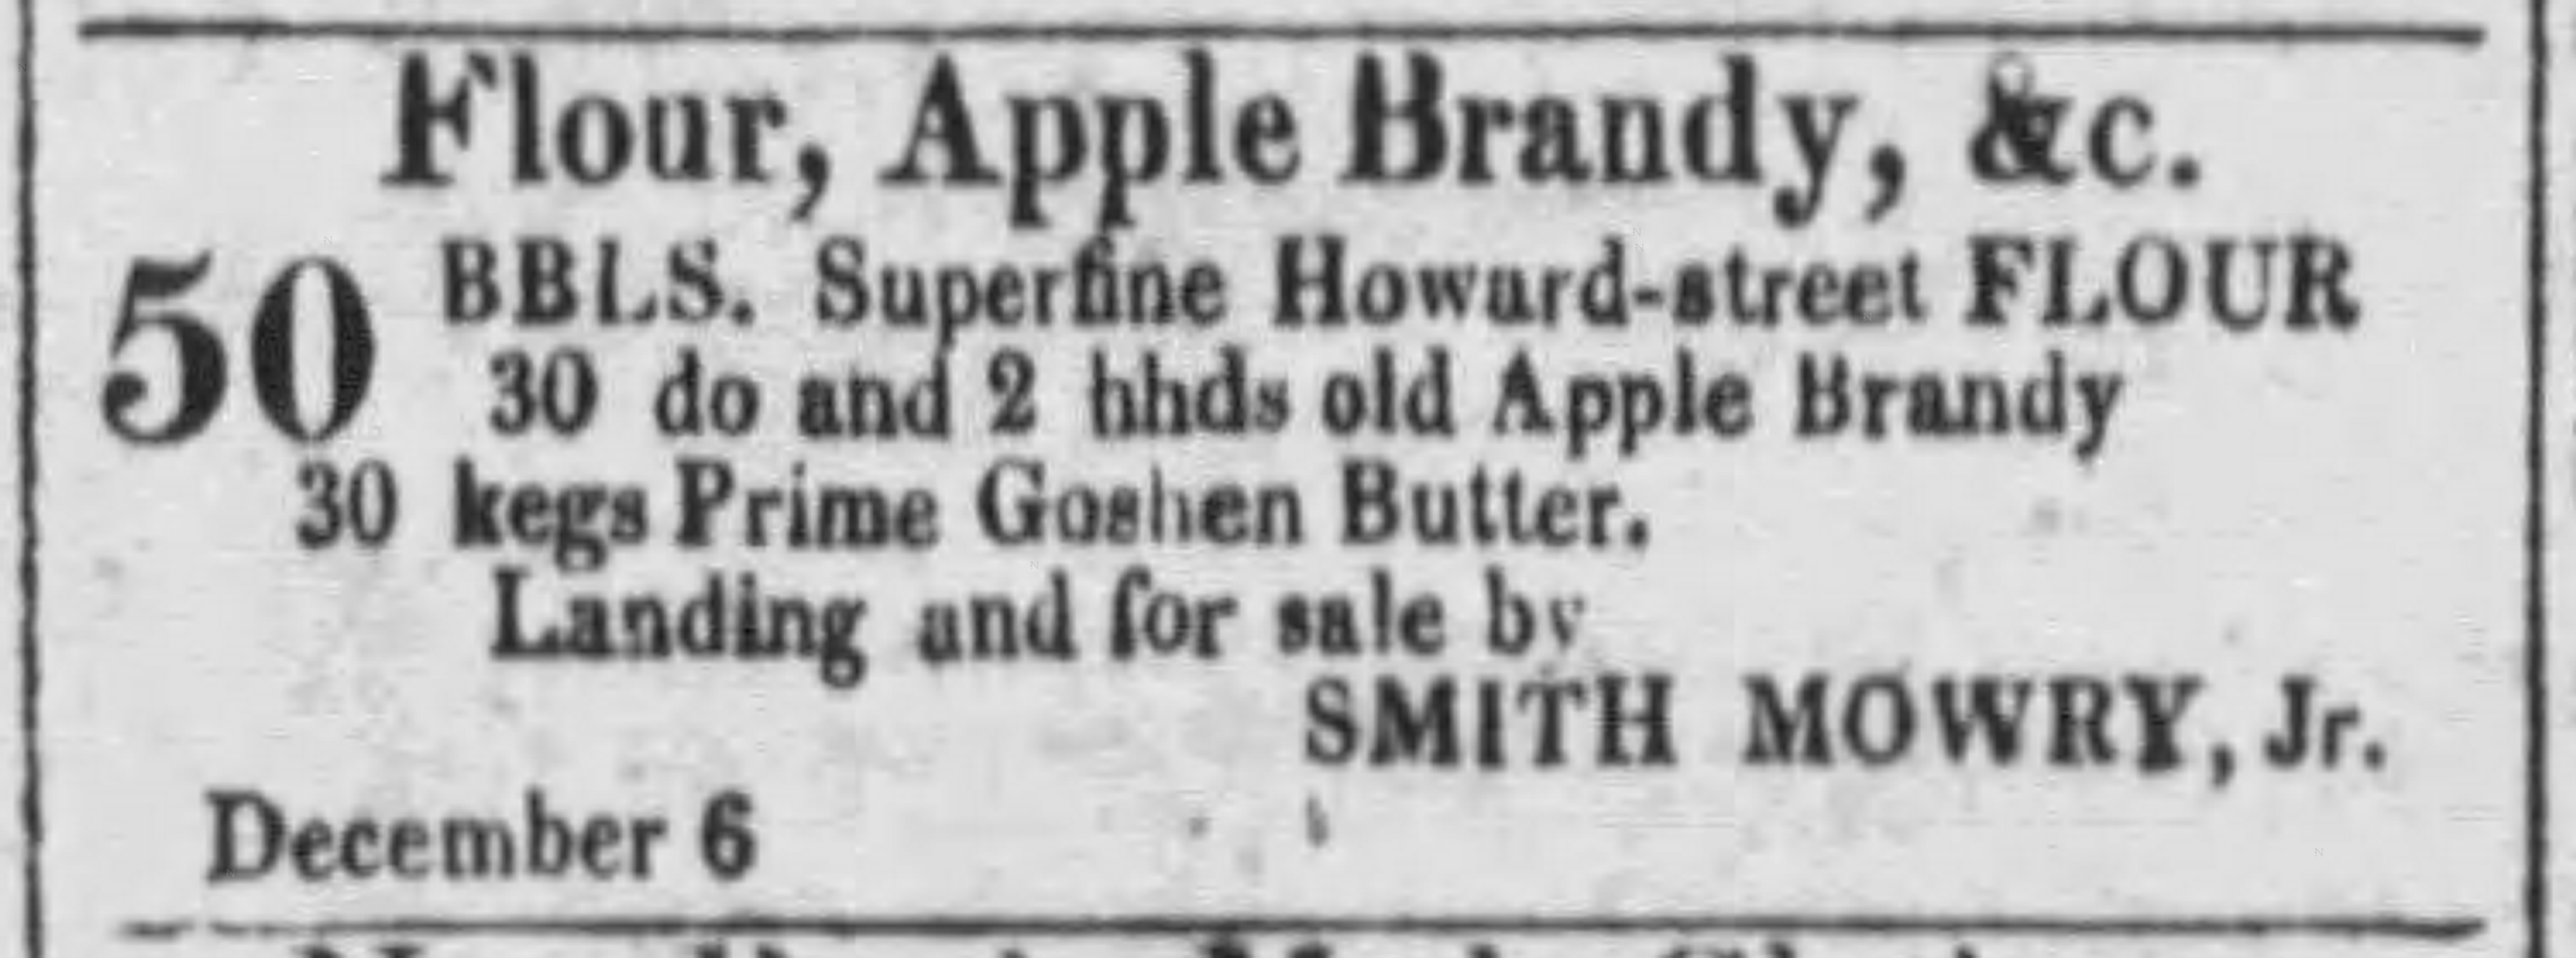 antique advertisement from a general store listing apple brandy as being in stock